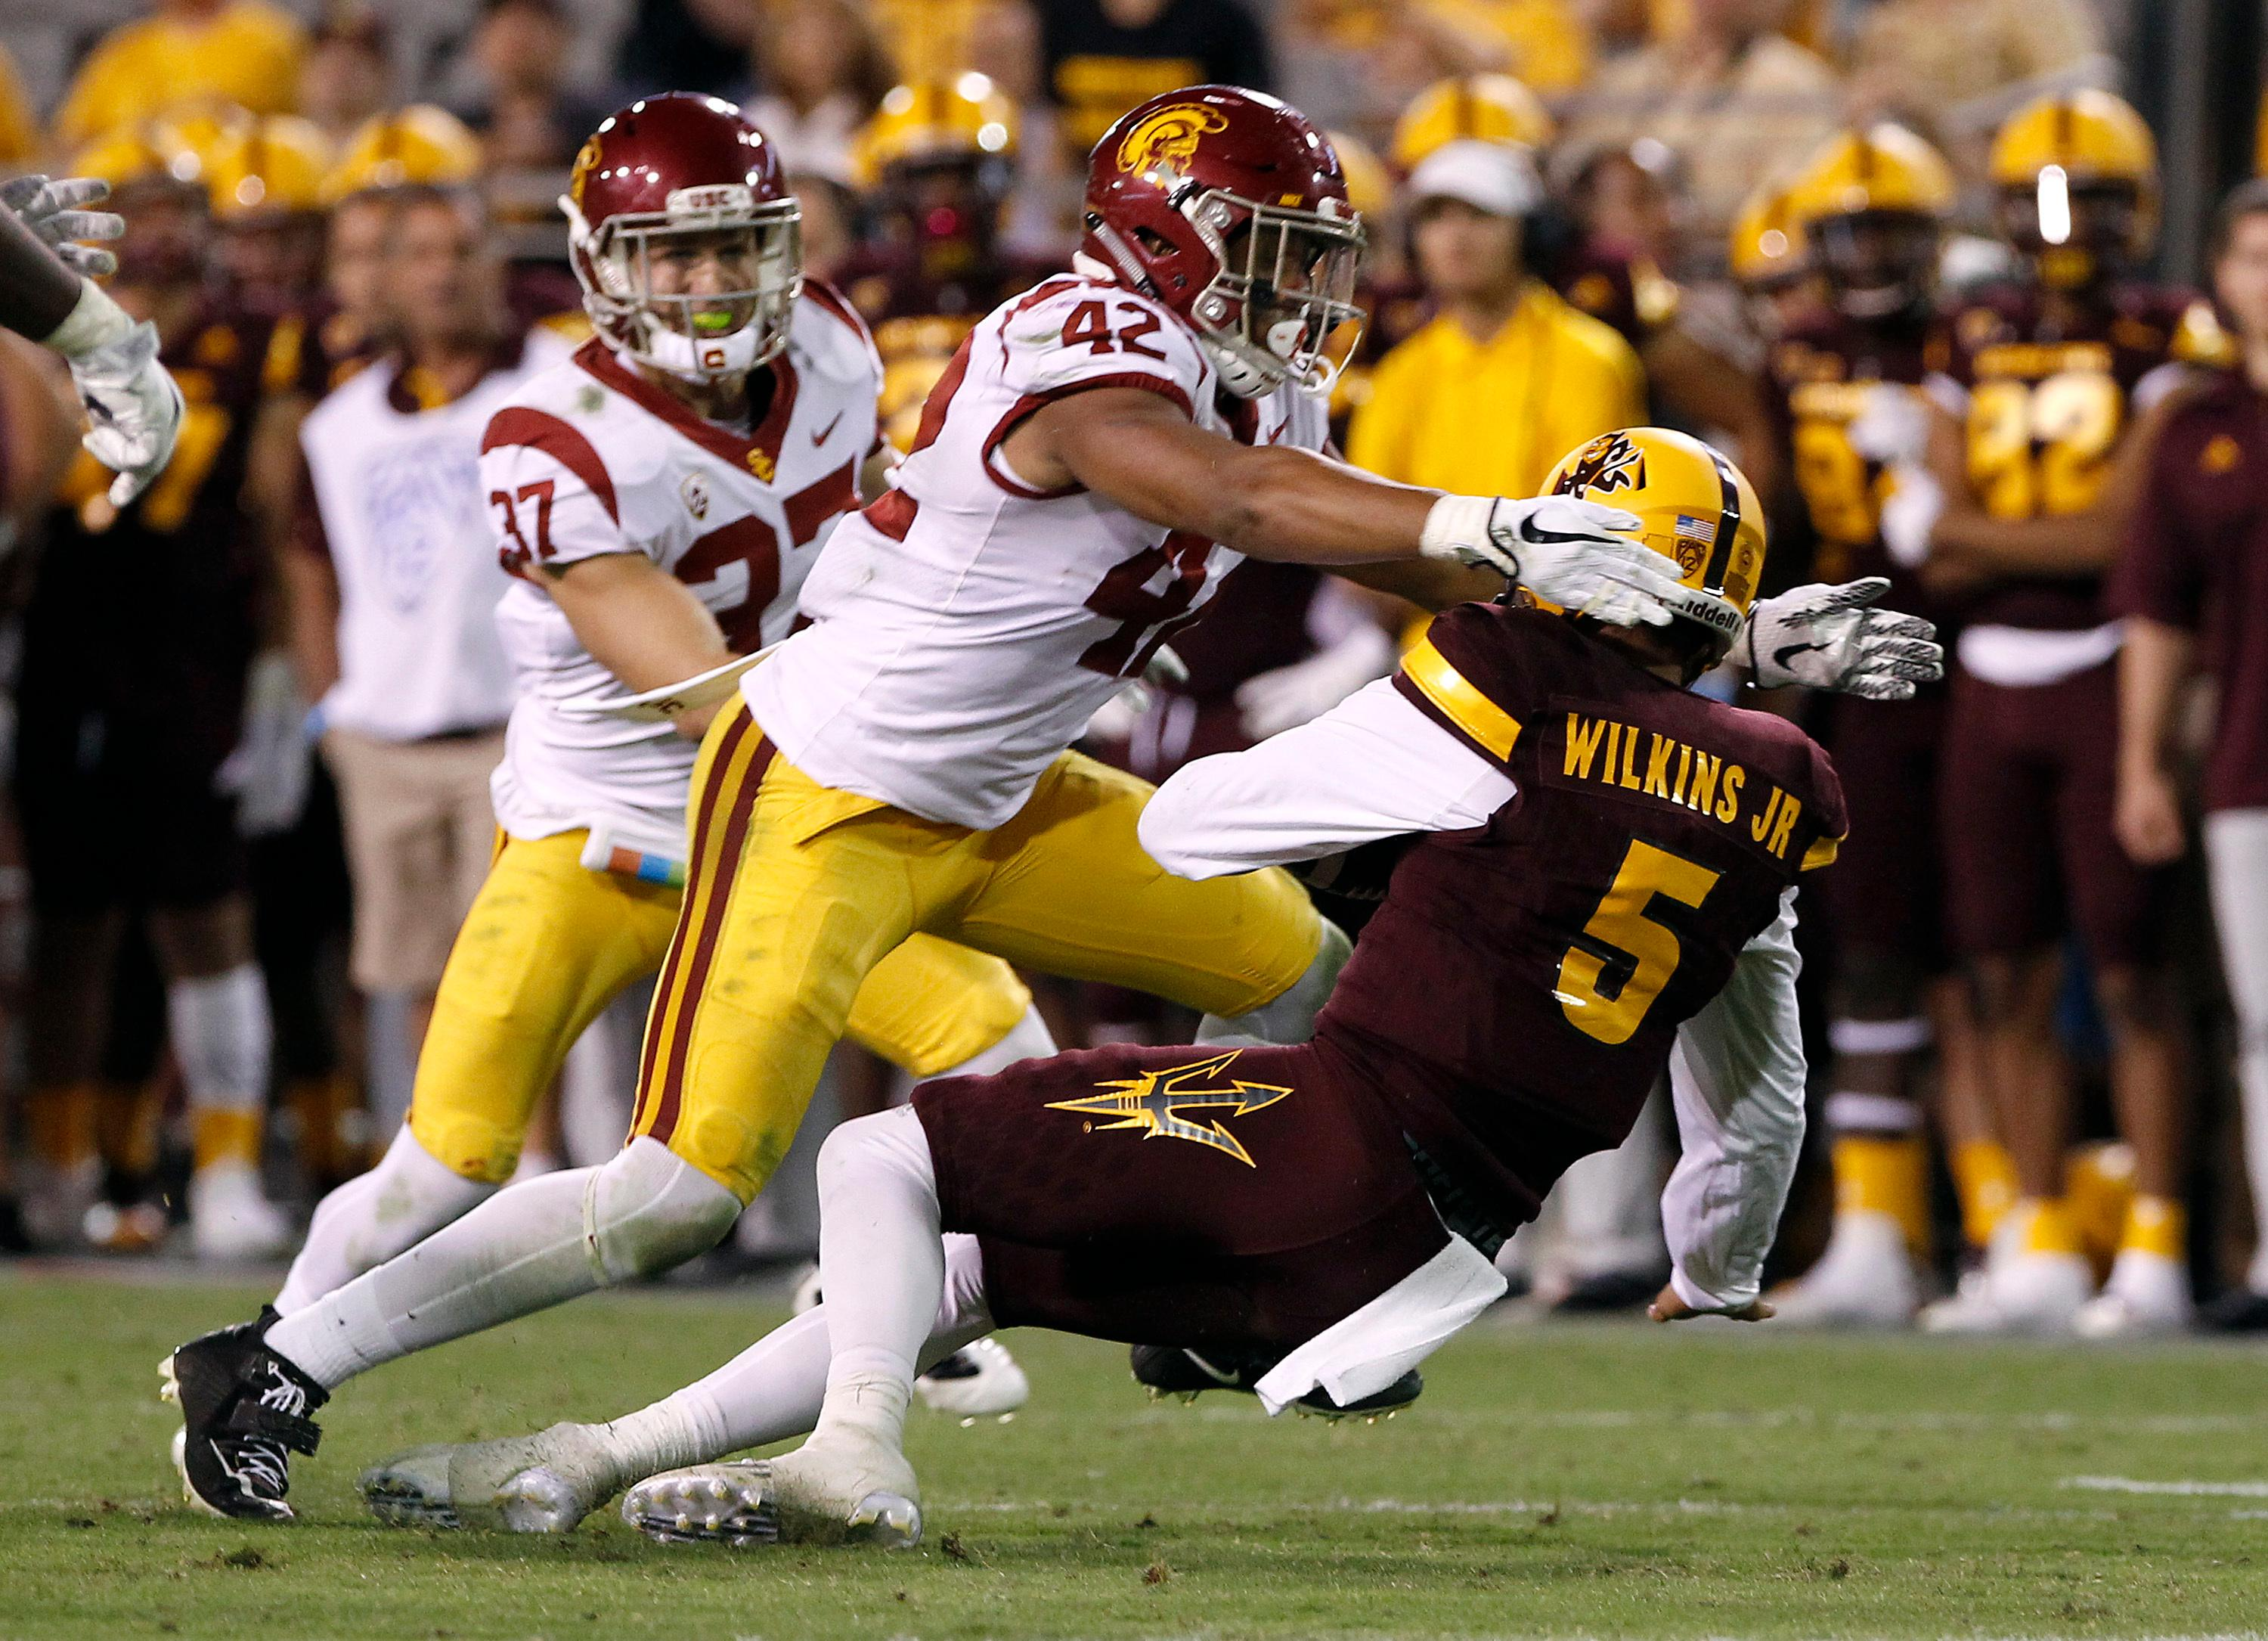 FILE - In this Oct. 28, 2017, file photo, Southern California linebacker Uchenna Nwosu (42) sacks Arizona State quarterback Manny Wilkins (5) during the second half of an NCAA college football game, in Tempe, Ariz. Nwosu was selected to the AP All-Conference Pac-12 team announced Thursday, Dec. 7, 2017. (AP Photo/Ralph Freso, File)